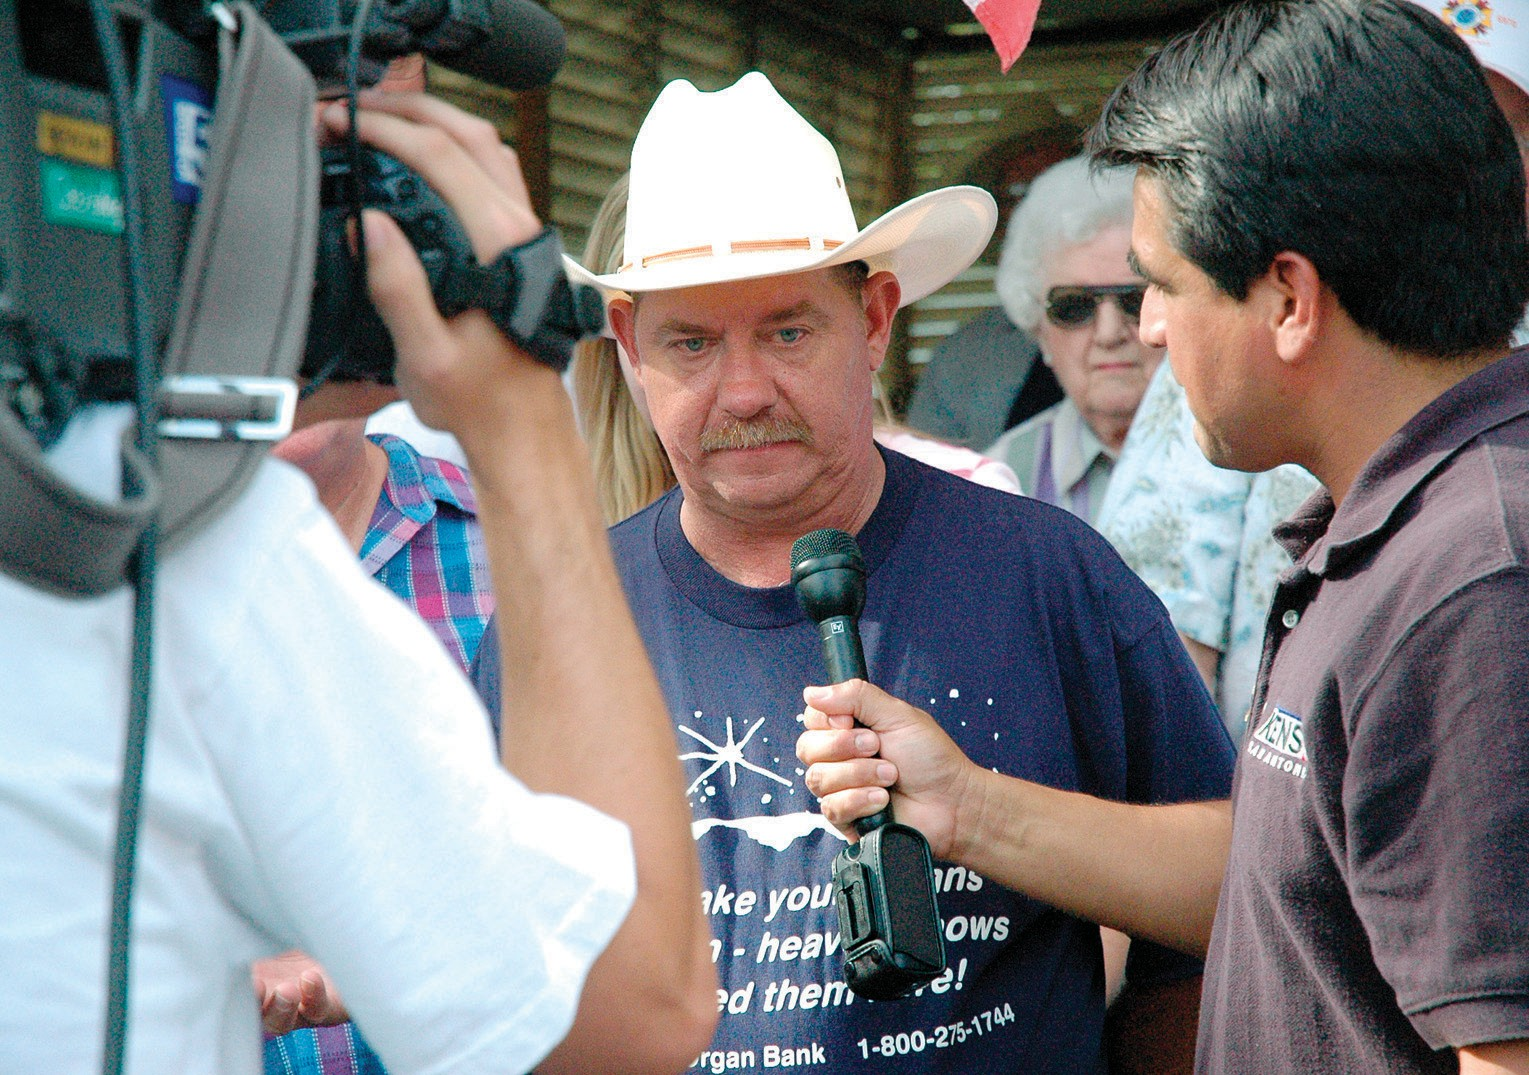 Raymond Marek was featured in KENS5 Backyard Bar-B-Q segment in 2006. Weatherman Paul Mireles interviewed the double transplant recipient among a family and friends celebration of life.